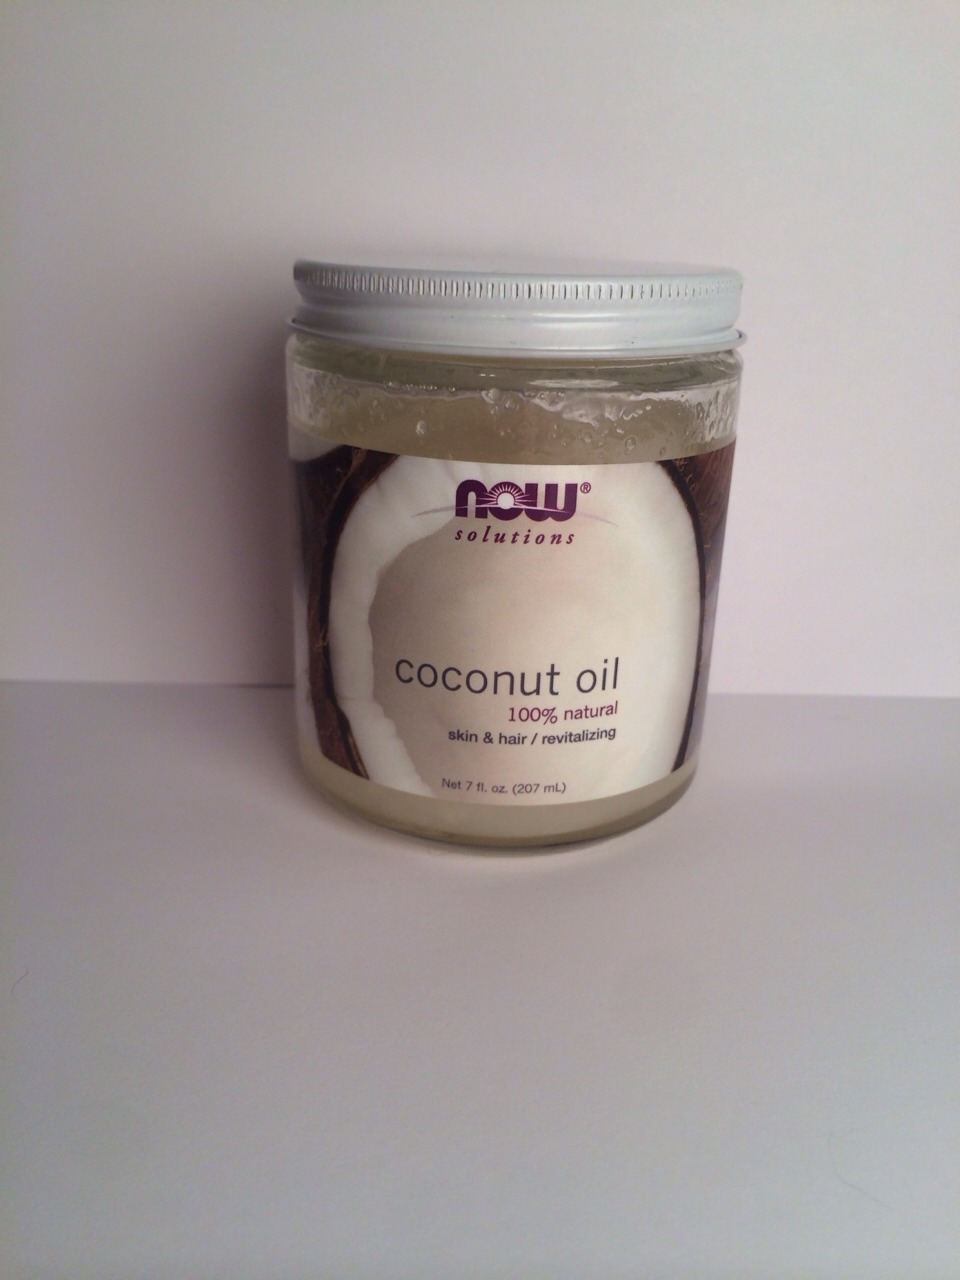 Part 1: 100% All Natural Coconut Oil Benefits: Coconut oil has mass amounts of Vitamin E, which promotes healthy hair growth and makes hair look shinier and healthier after just one use.